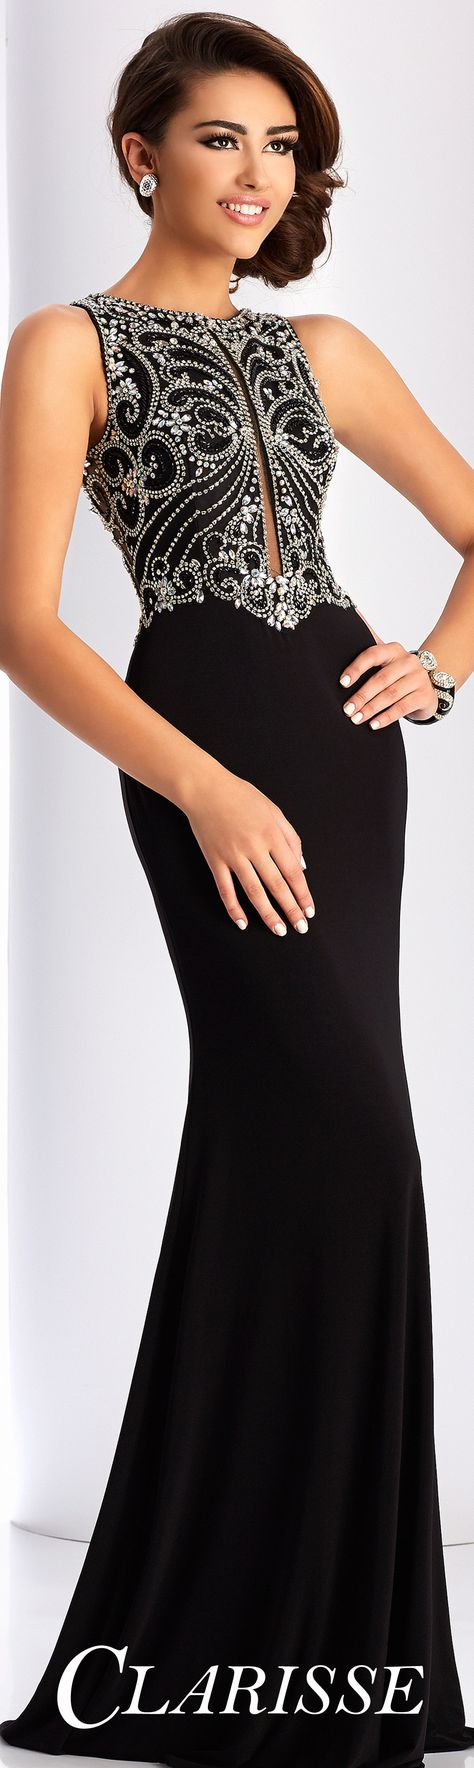 Clarisse prom dress fitted sleeveless prom dress with a fully